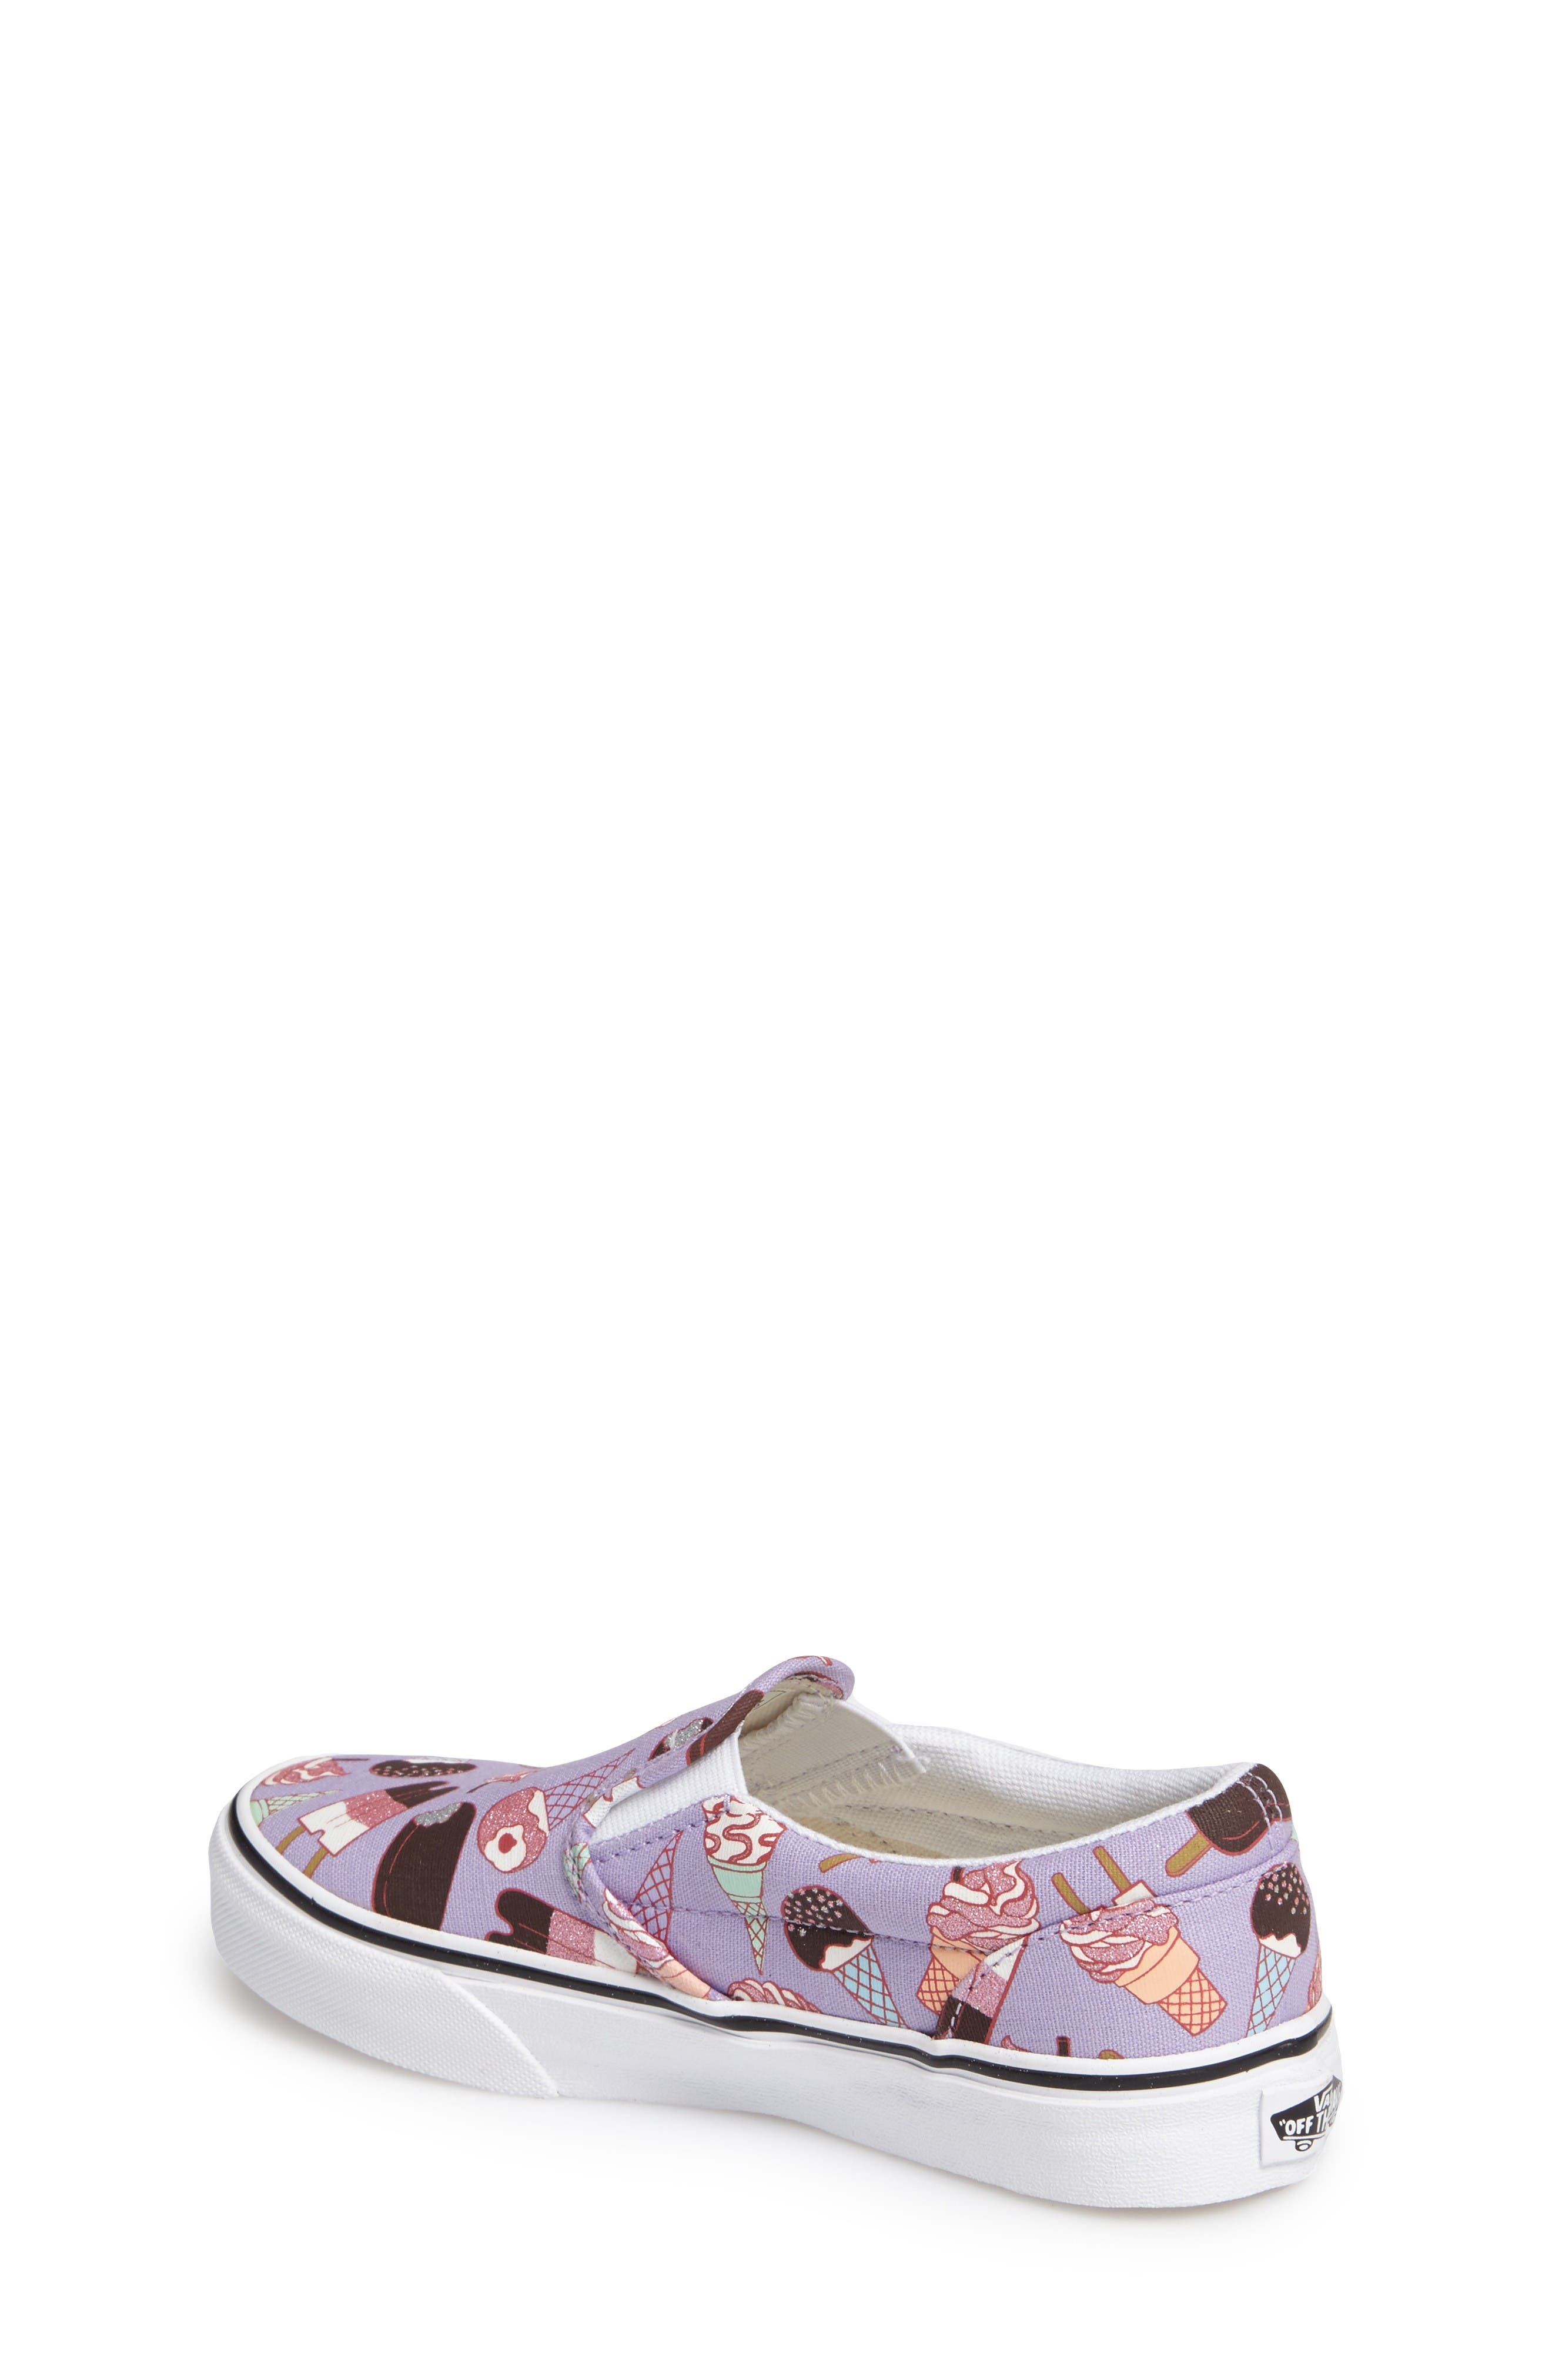 Classic Slip-On,                             Alternate thumbnail 2, color,                             Glitter Lavender/ White